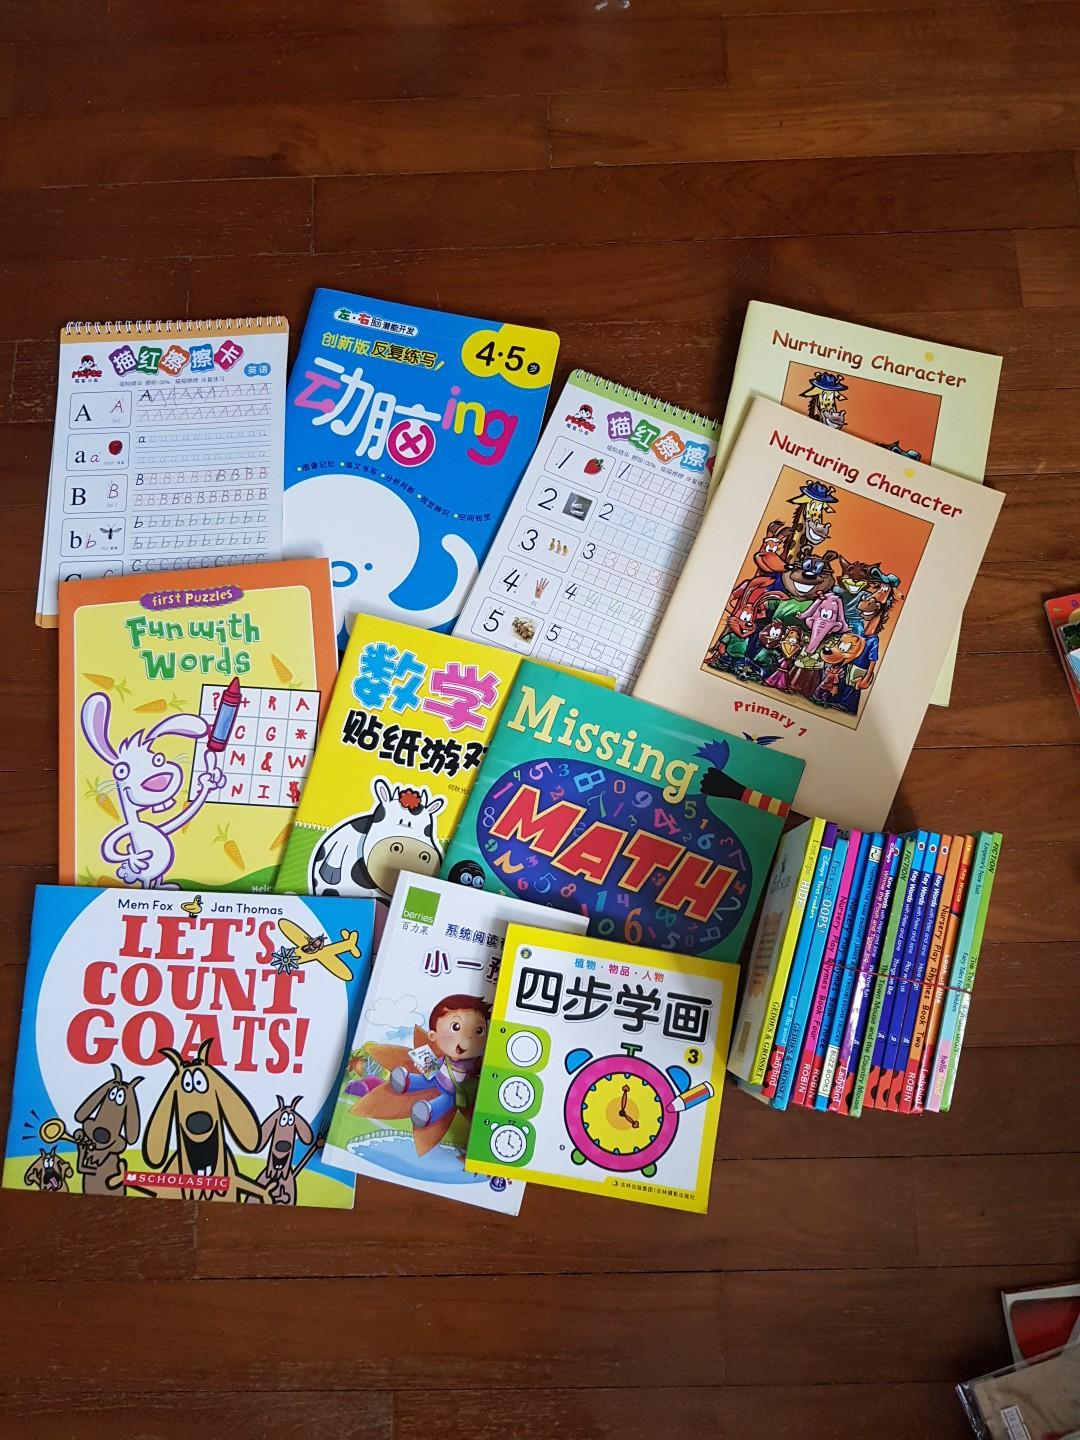 Children bundle books sale for 4 to 6 years old